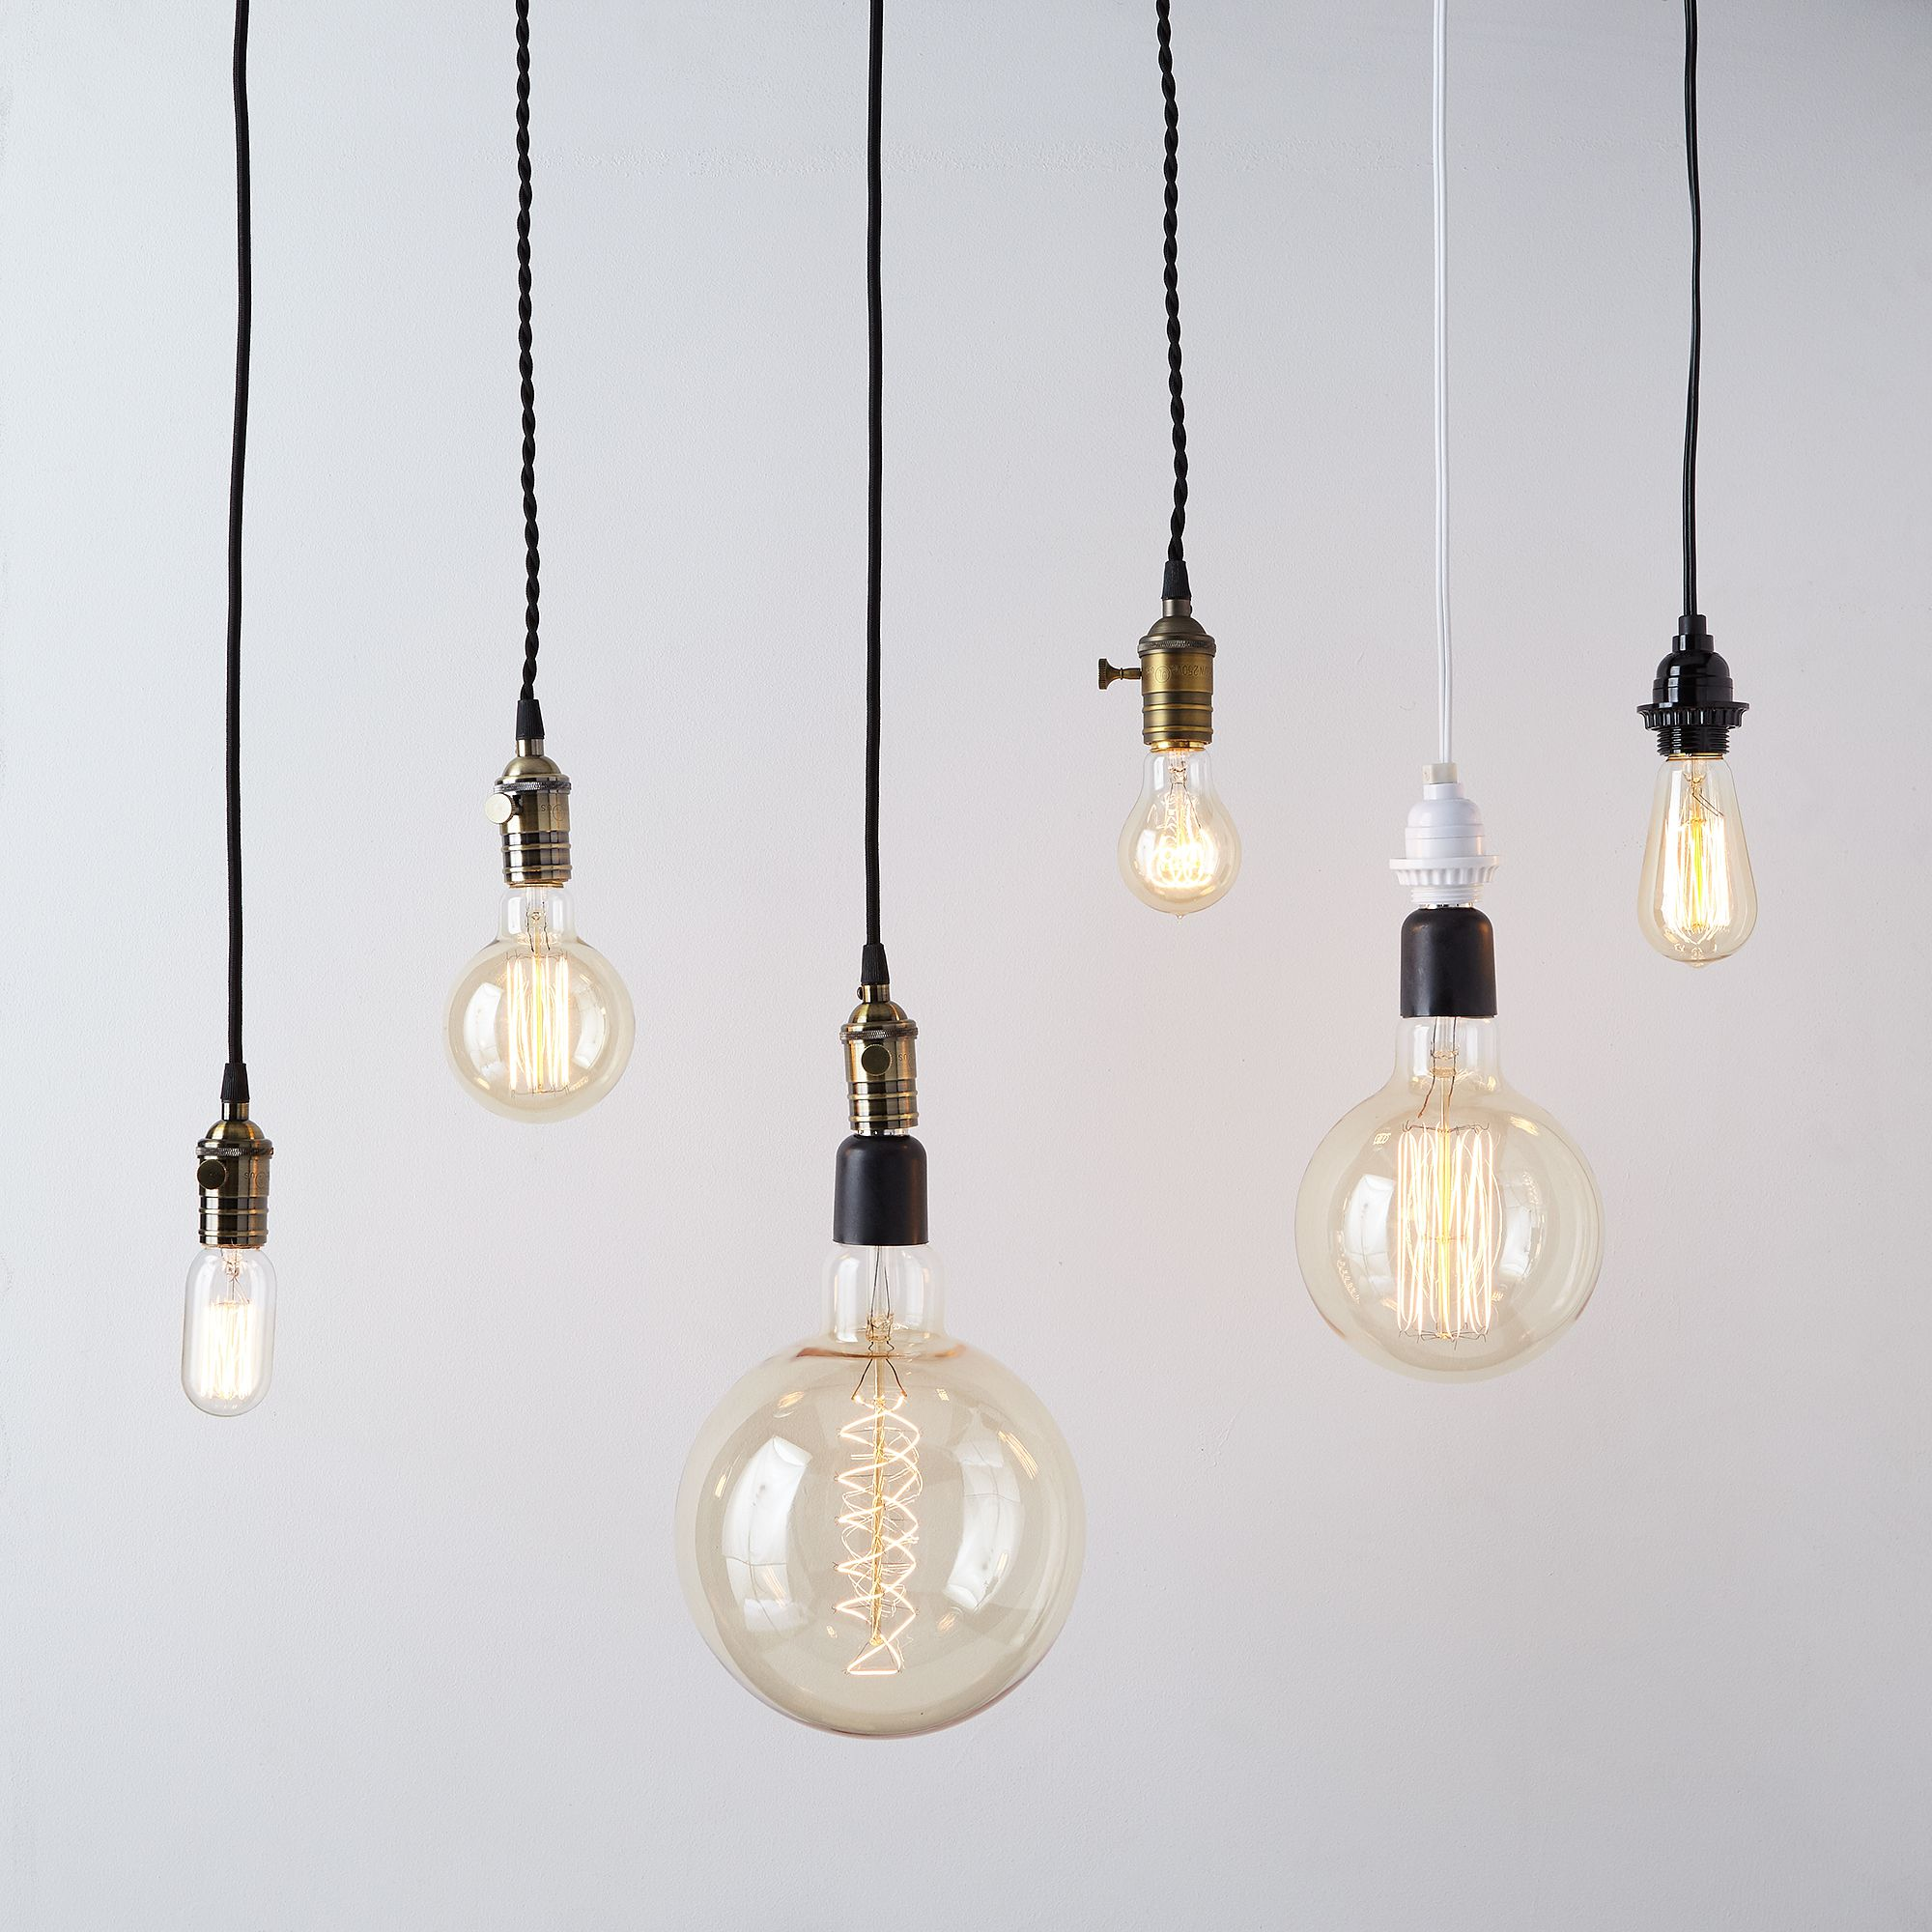 ceramic ceiling top edison ace cluster desk bulb lamp ingenuity lamps bulbs antique table vintage light pendant